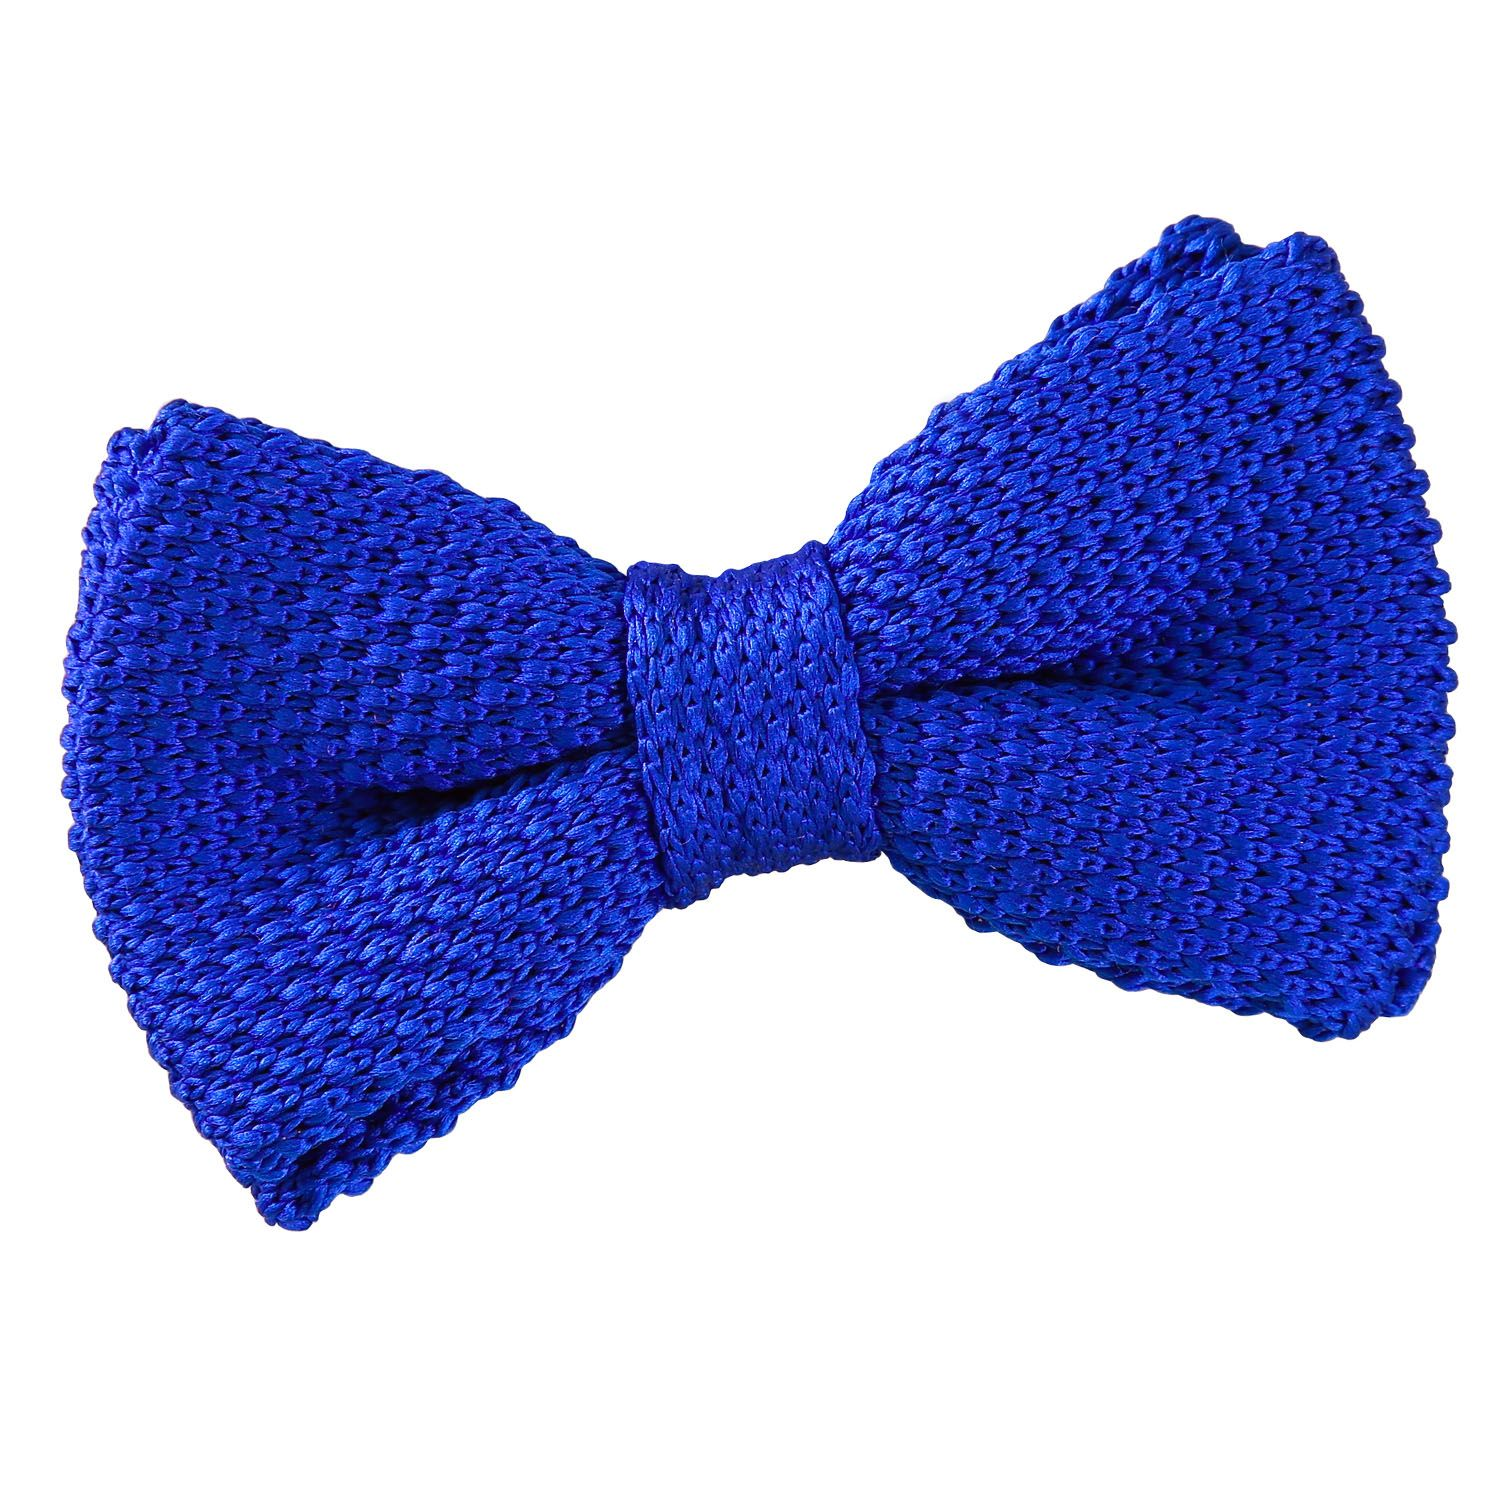 17efd5aac8fb Royal Blue Knitted Pre-Tied Bow Tie for Boys | Boy's Bows ...